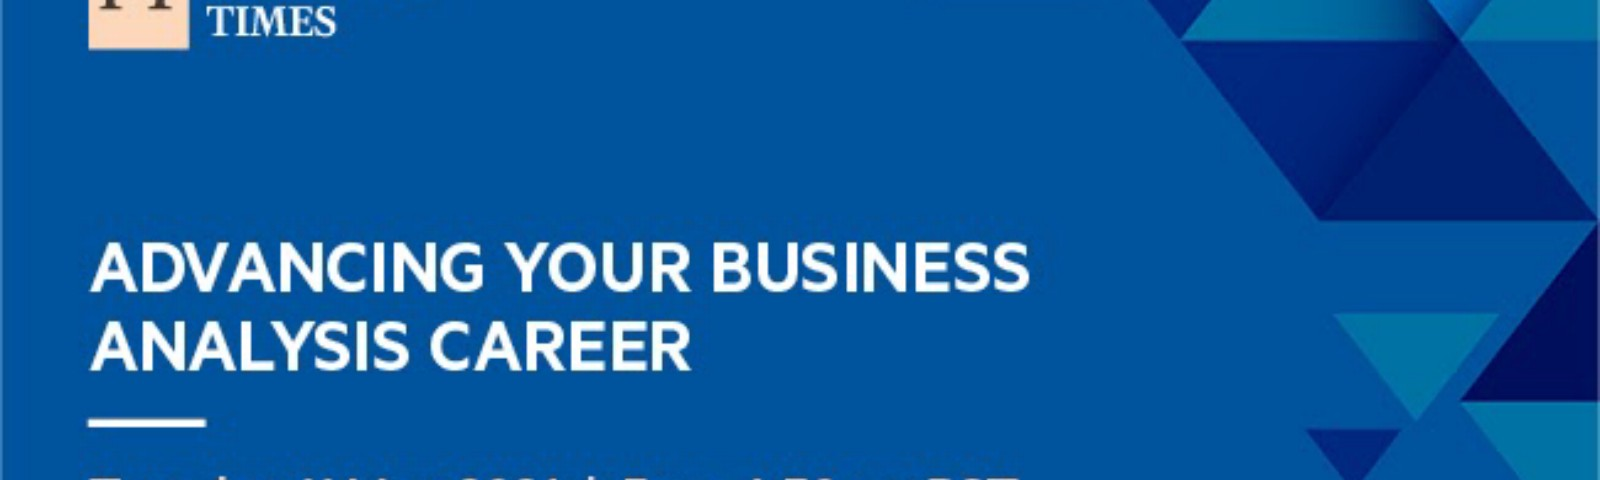 Image shows a designed promotion card for the Business Analysis event 'Advancing your business analysis career' on Tuesday 11 May 2021 at 5pm BST, for use on social media